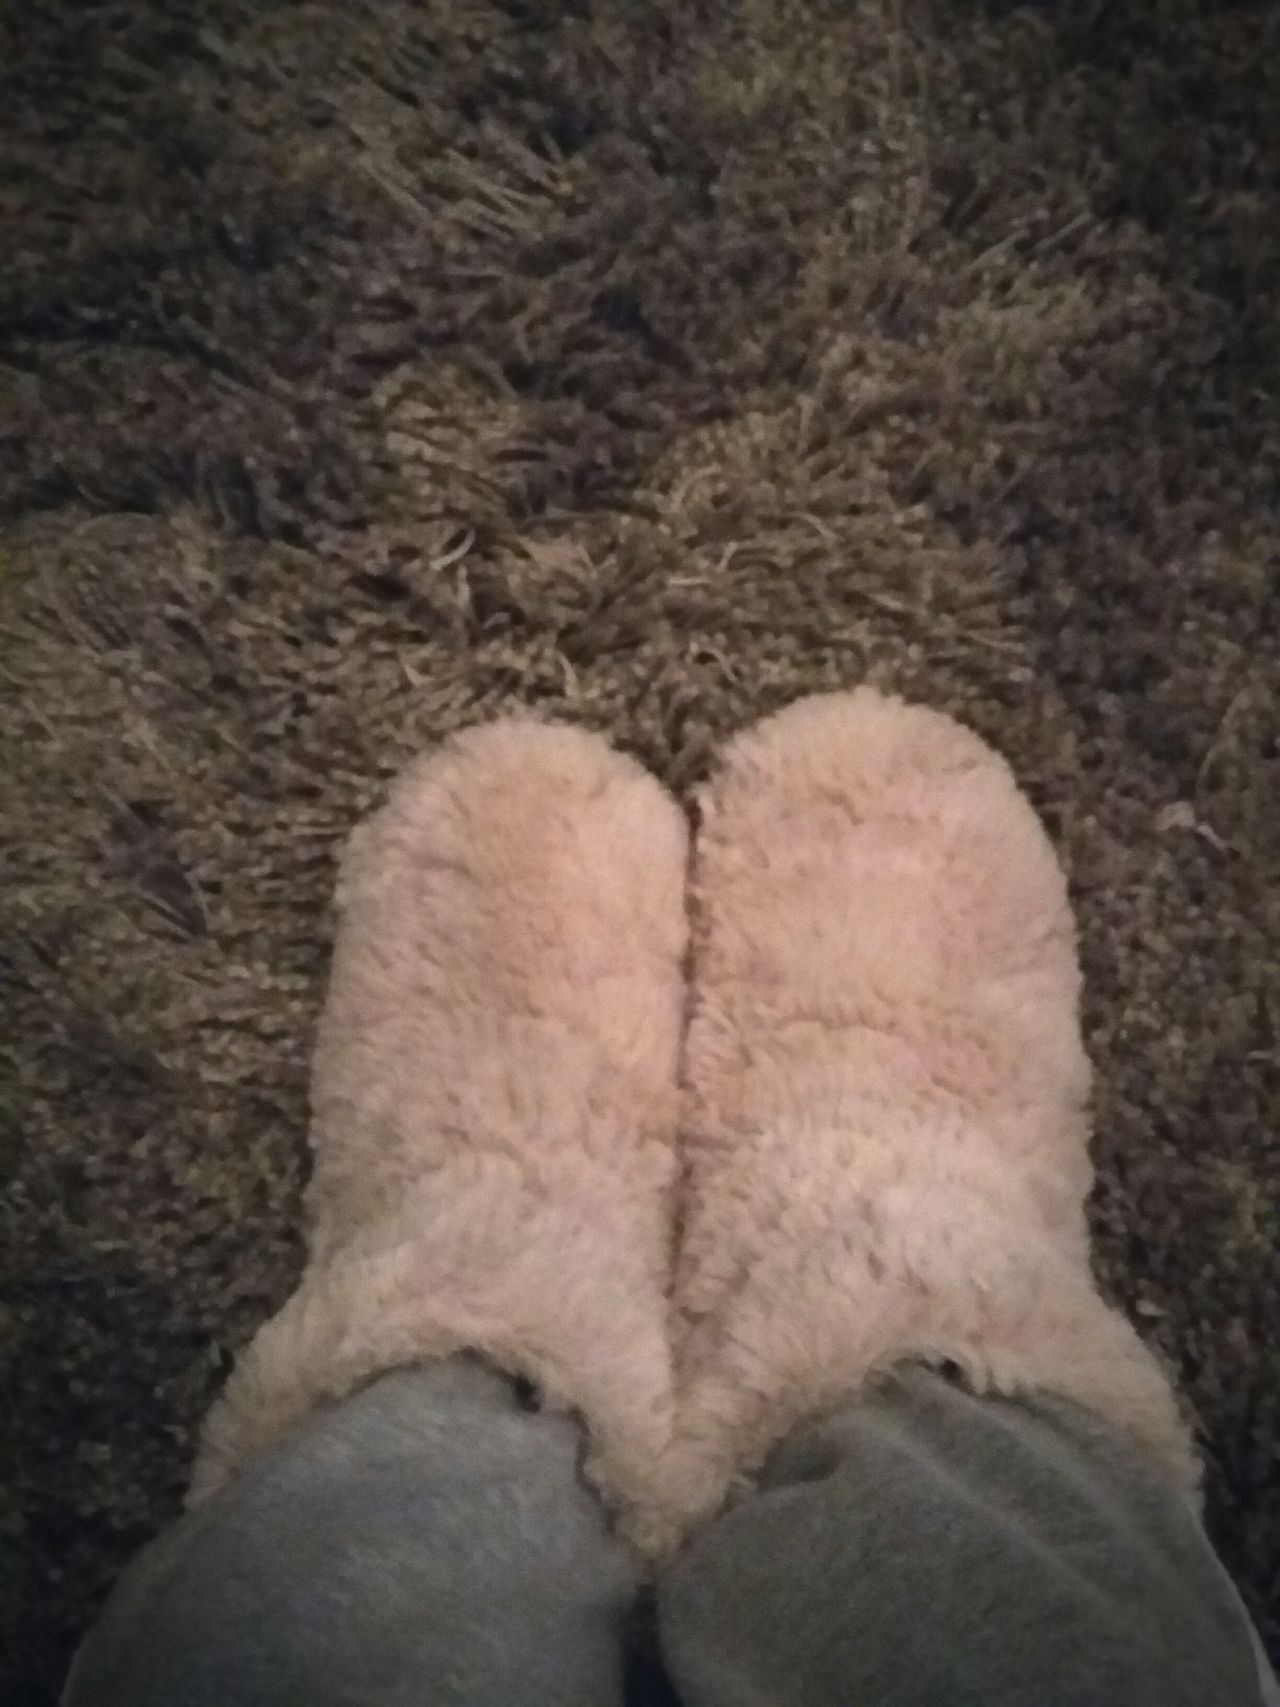 Human Body Part Warm Clothing Fur Close-up Winter One Person Human Hand Adults Only People Adult Day Slippers Carpet Always Be Cozy Cozy Moments Exploring Style EyeEm Best Shots EyeEm Gallery Getting Cozy Floortraits